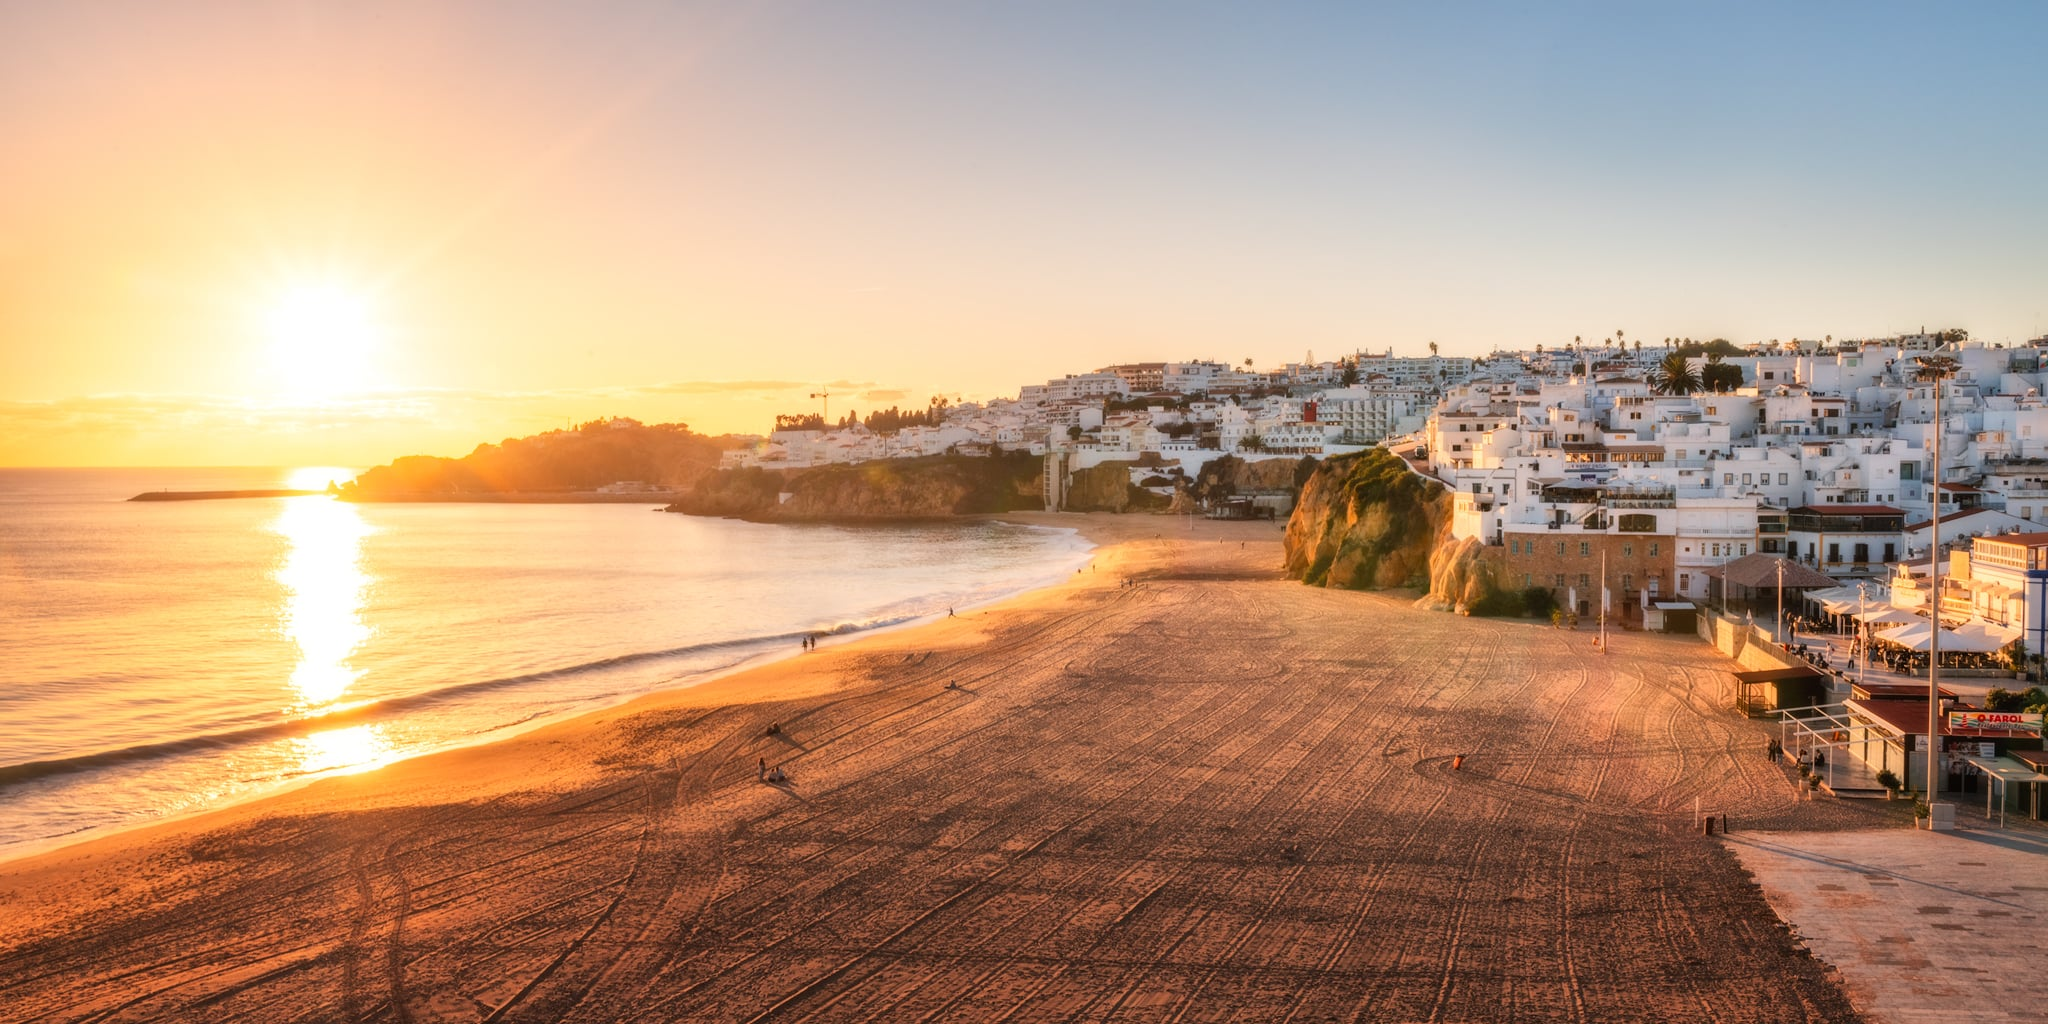 Albufeira in Algarve - panorama of the beach at sunset; Portugal